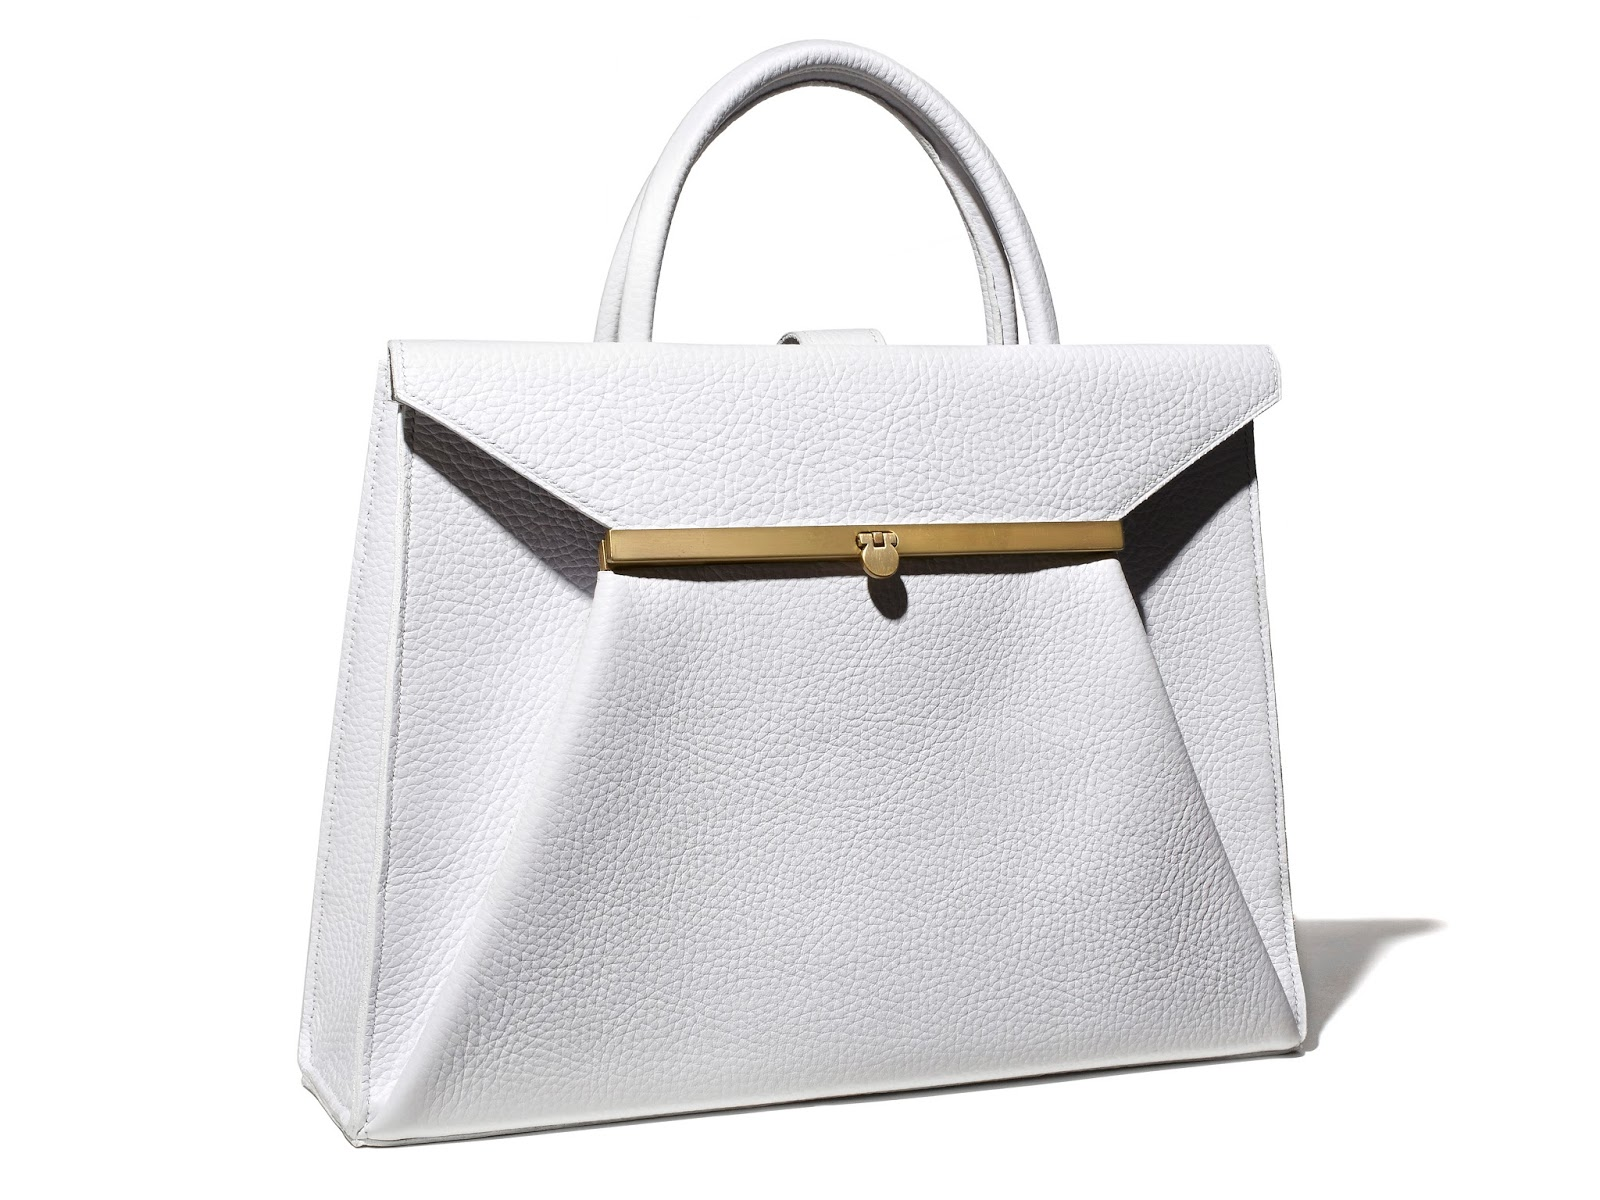 Mandy Chang Design Studio S Handbag That Won The Evine Live Best In Overall Style And Award At 9th Annual Independent